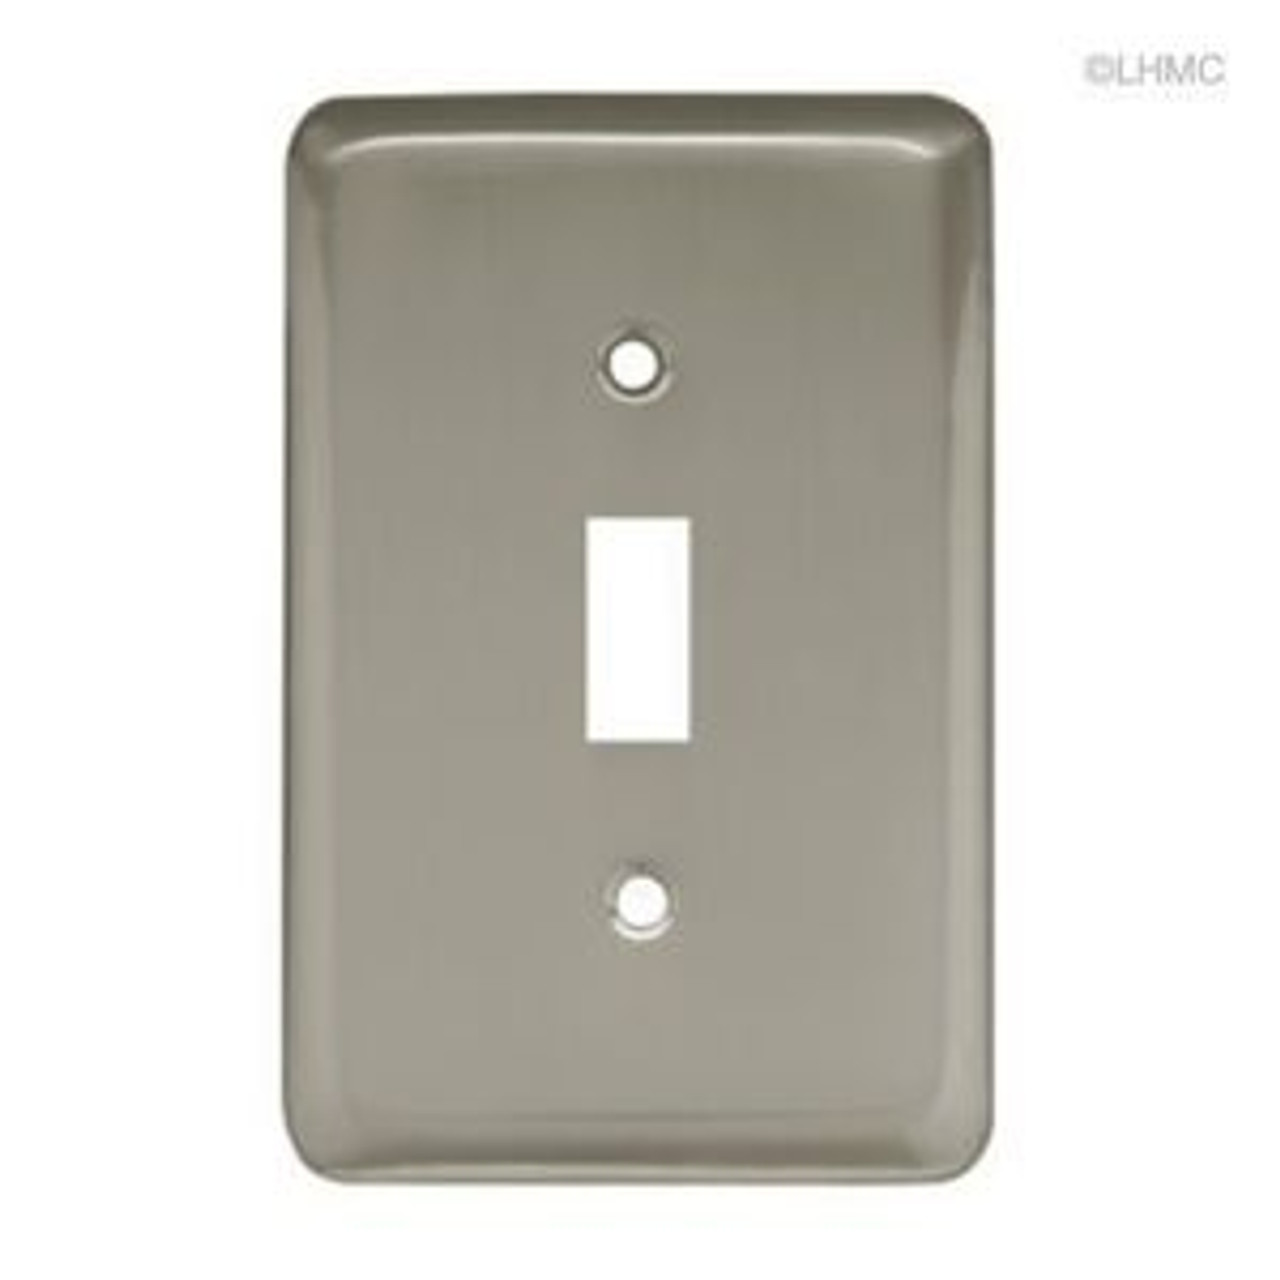 Franklin Brass W10245-SN Stamped Brushed Satin Nickel Single Switch Cover Plate